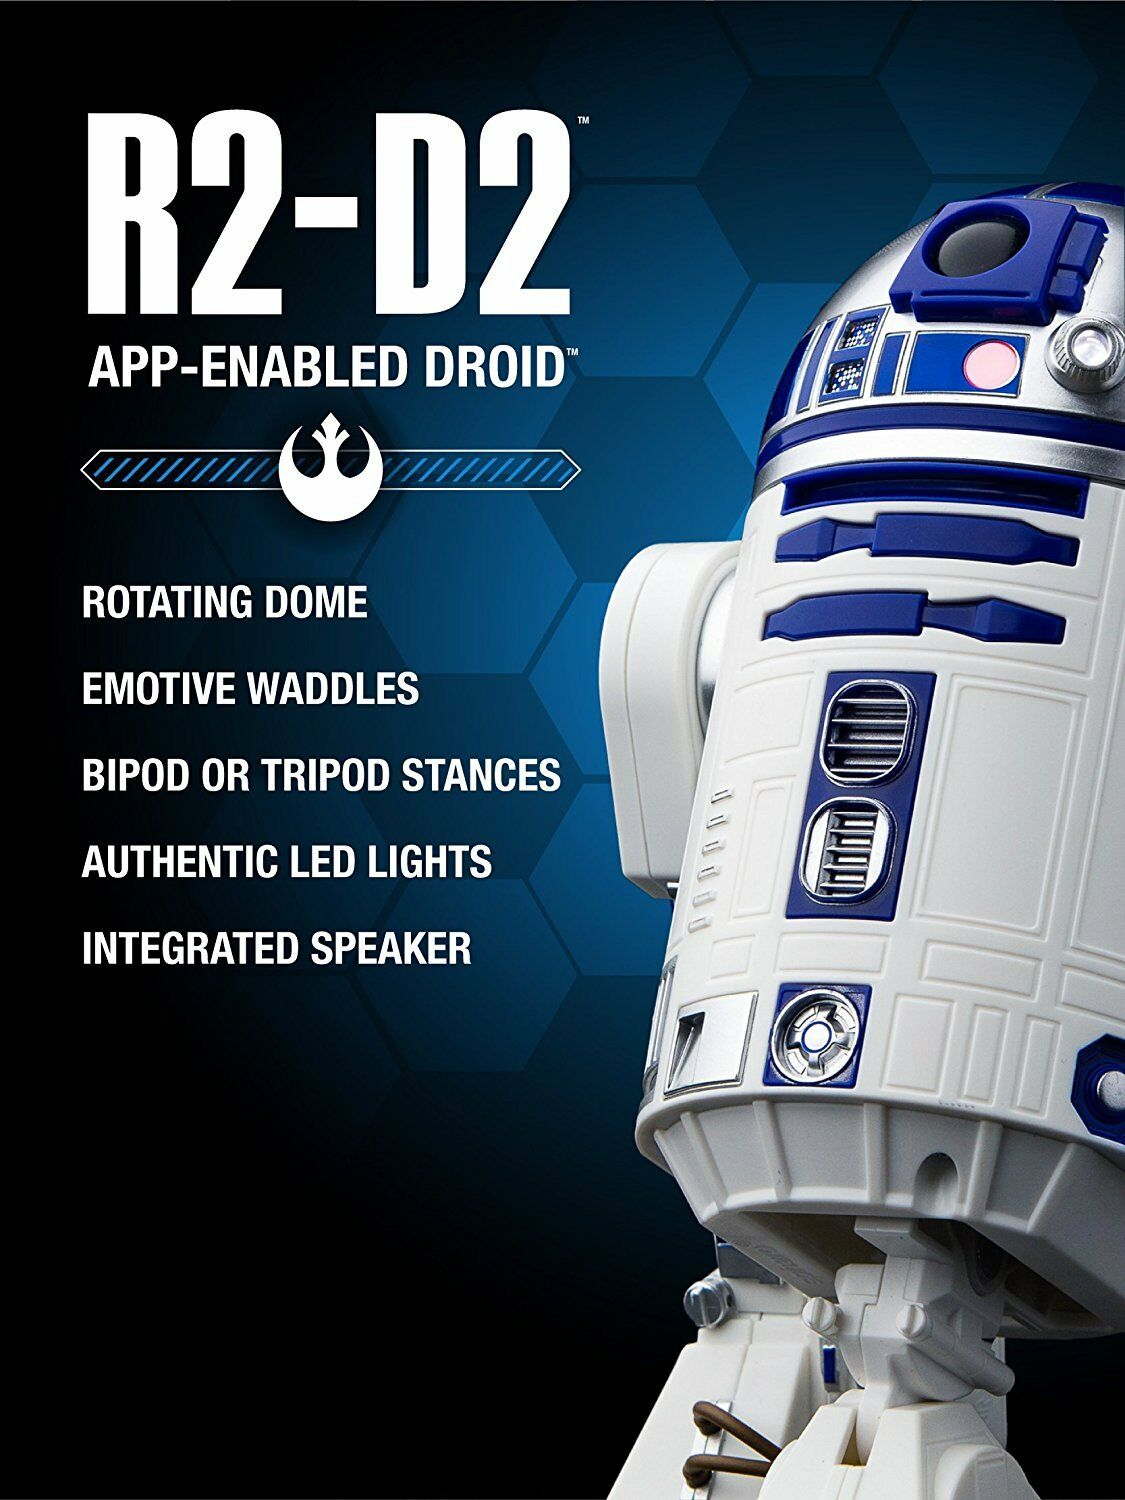 Star Wars R2-D2 App-Enabled Droid by Sphero autentico Movement Serie 2017